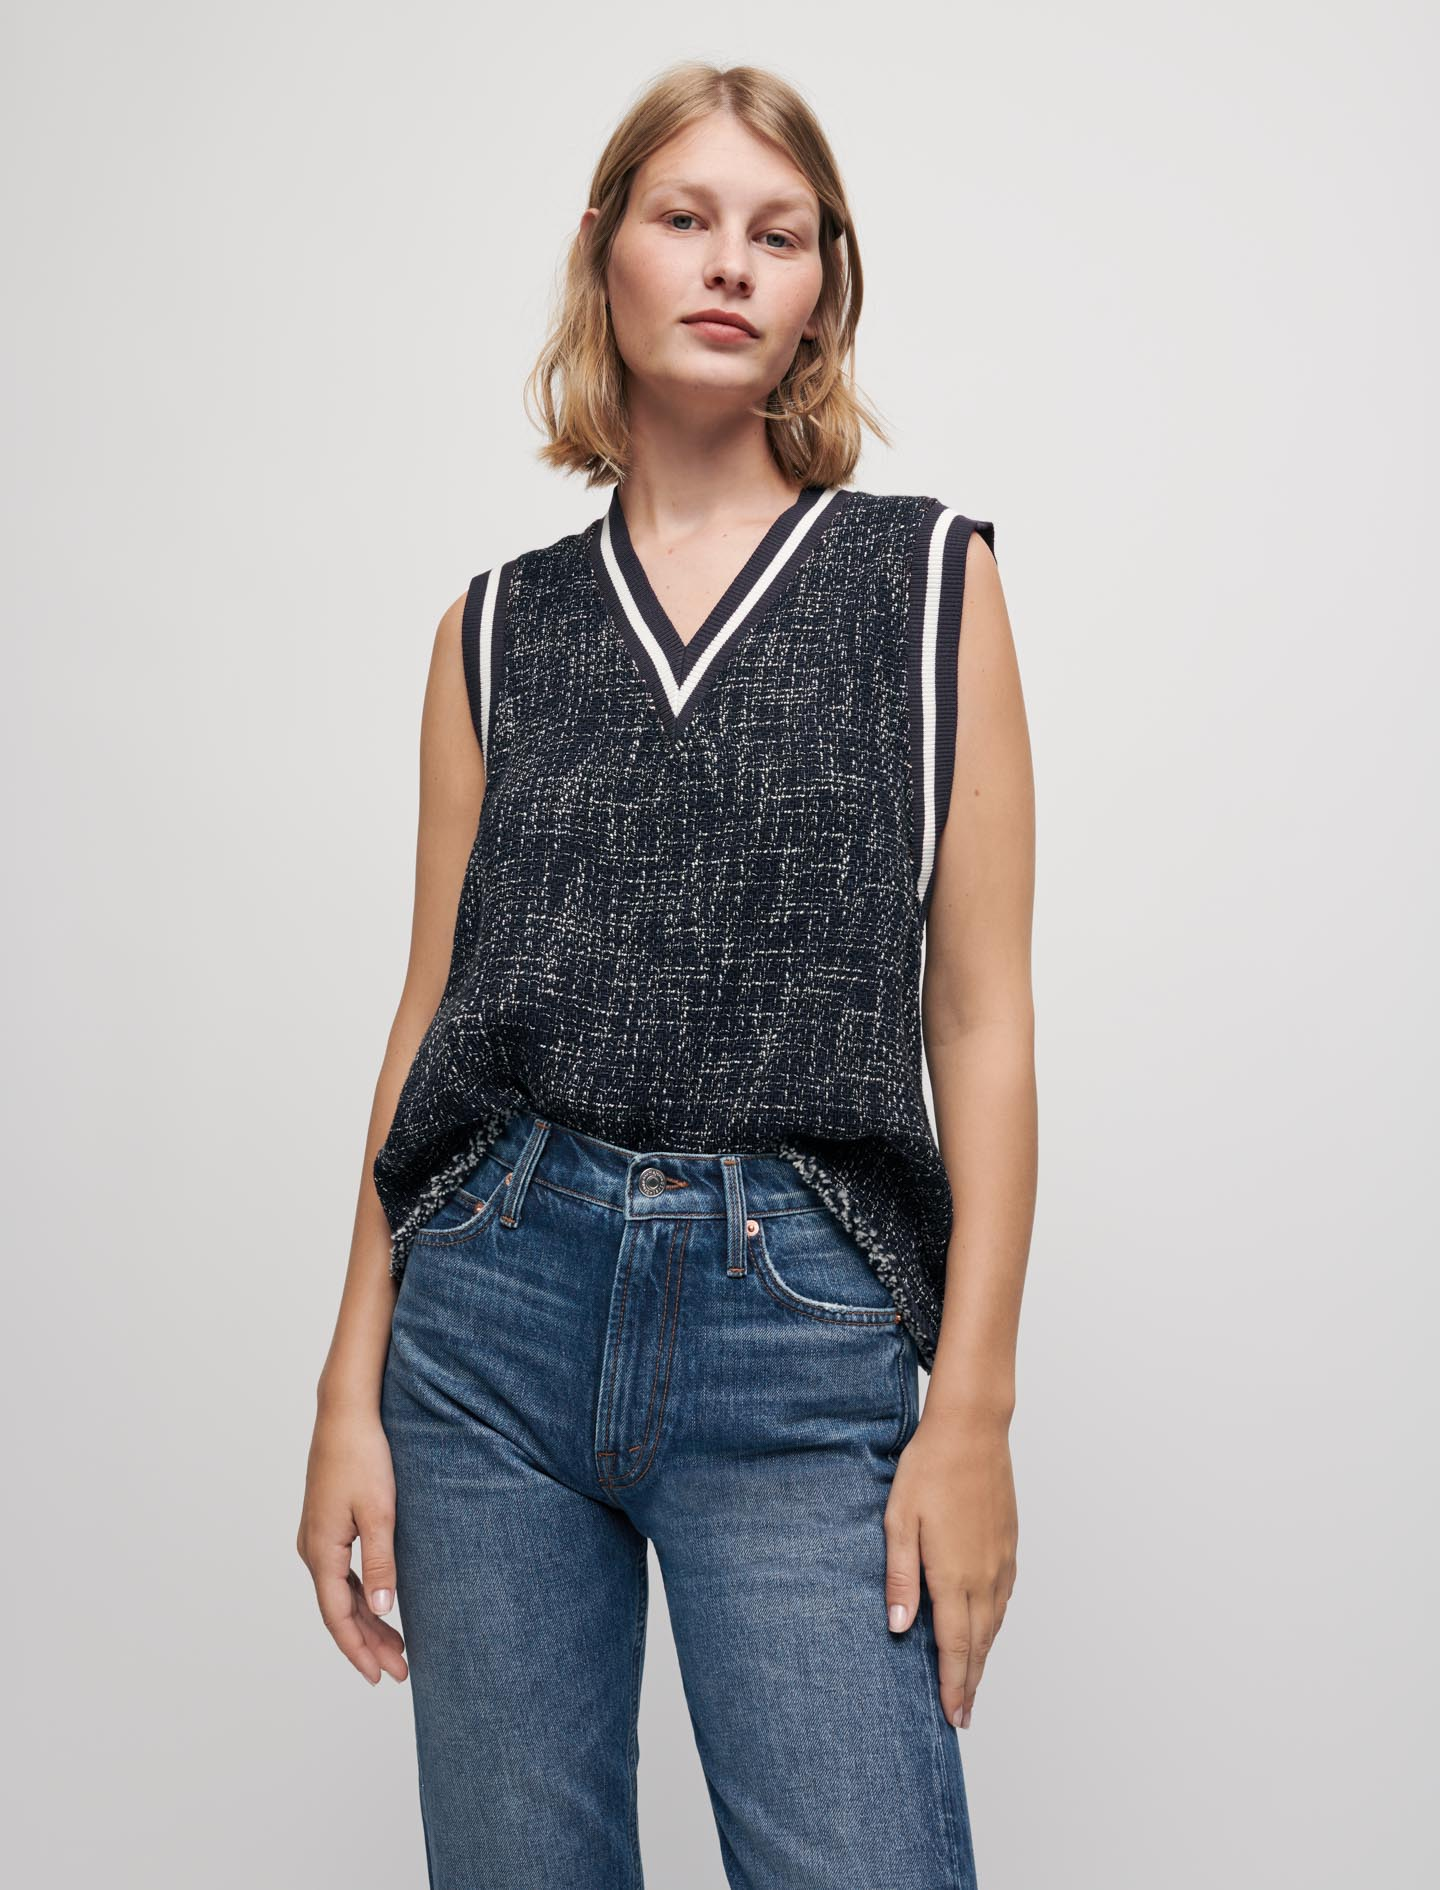 Tweed style top with contrasting bands - Navy